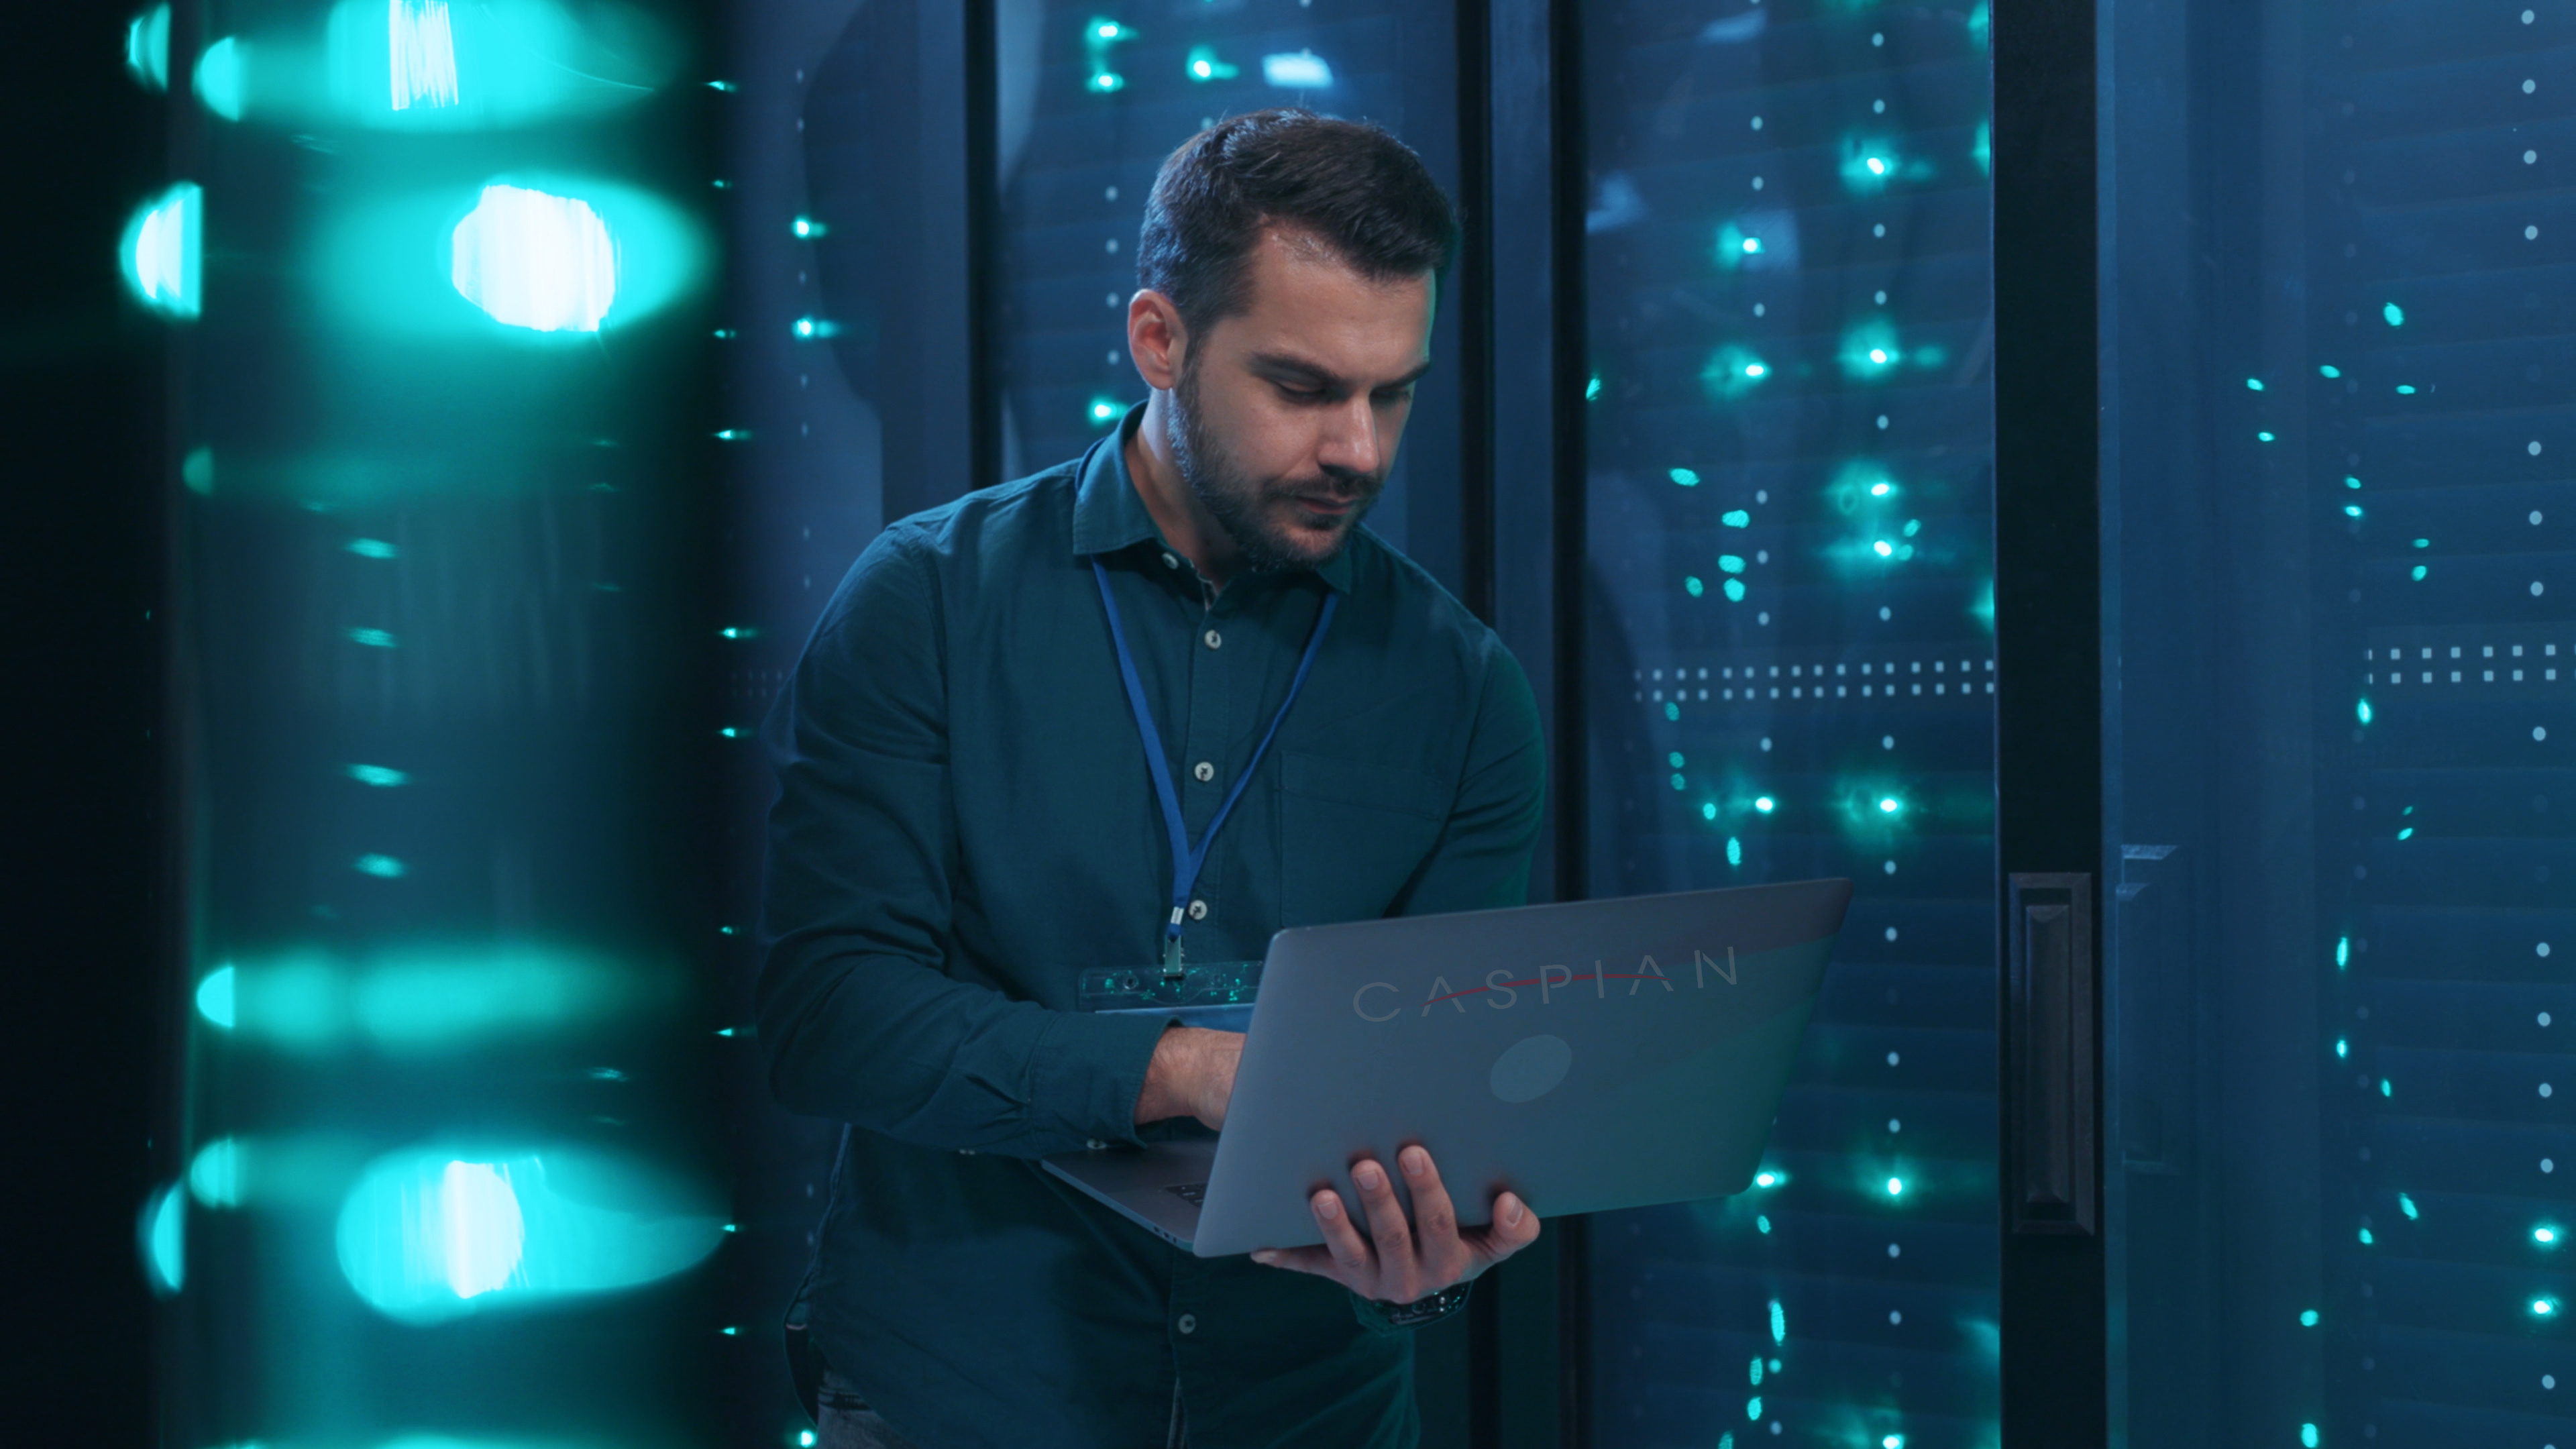 man on laptop with Caspian sticker monitoring server cabinets